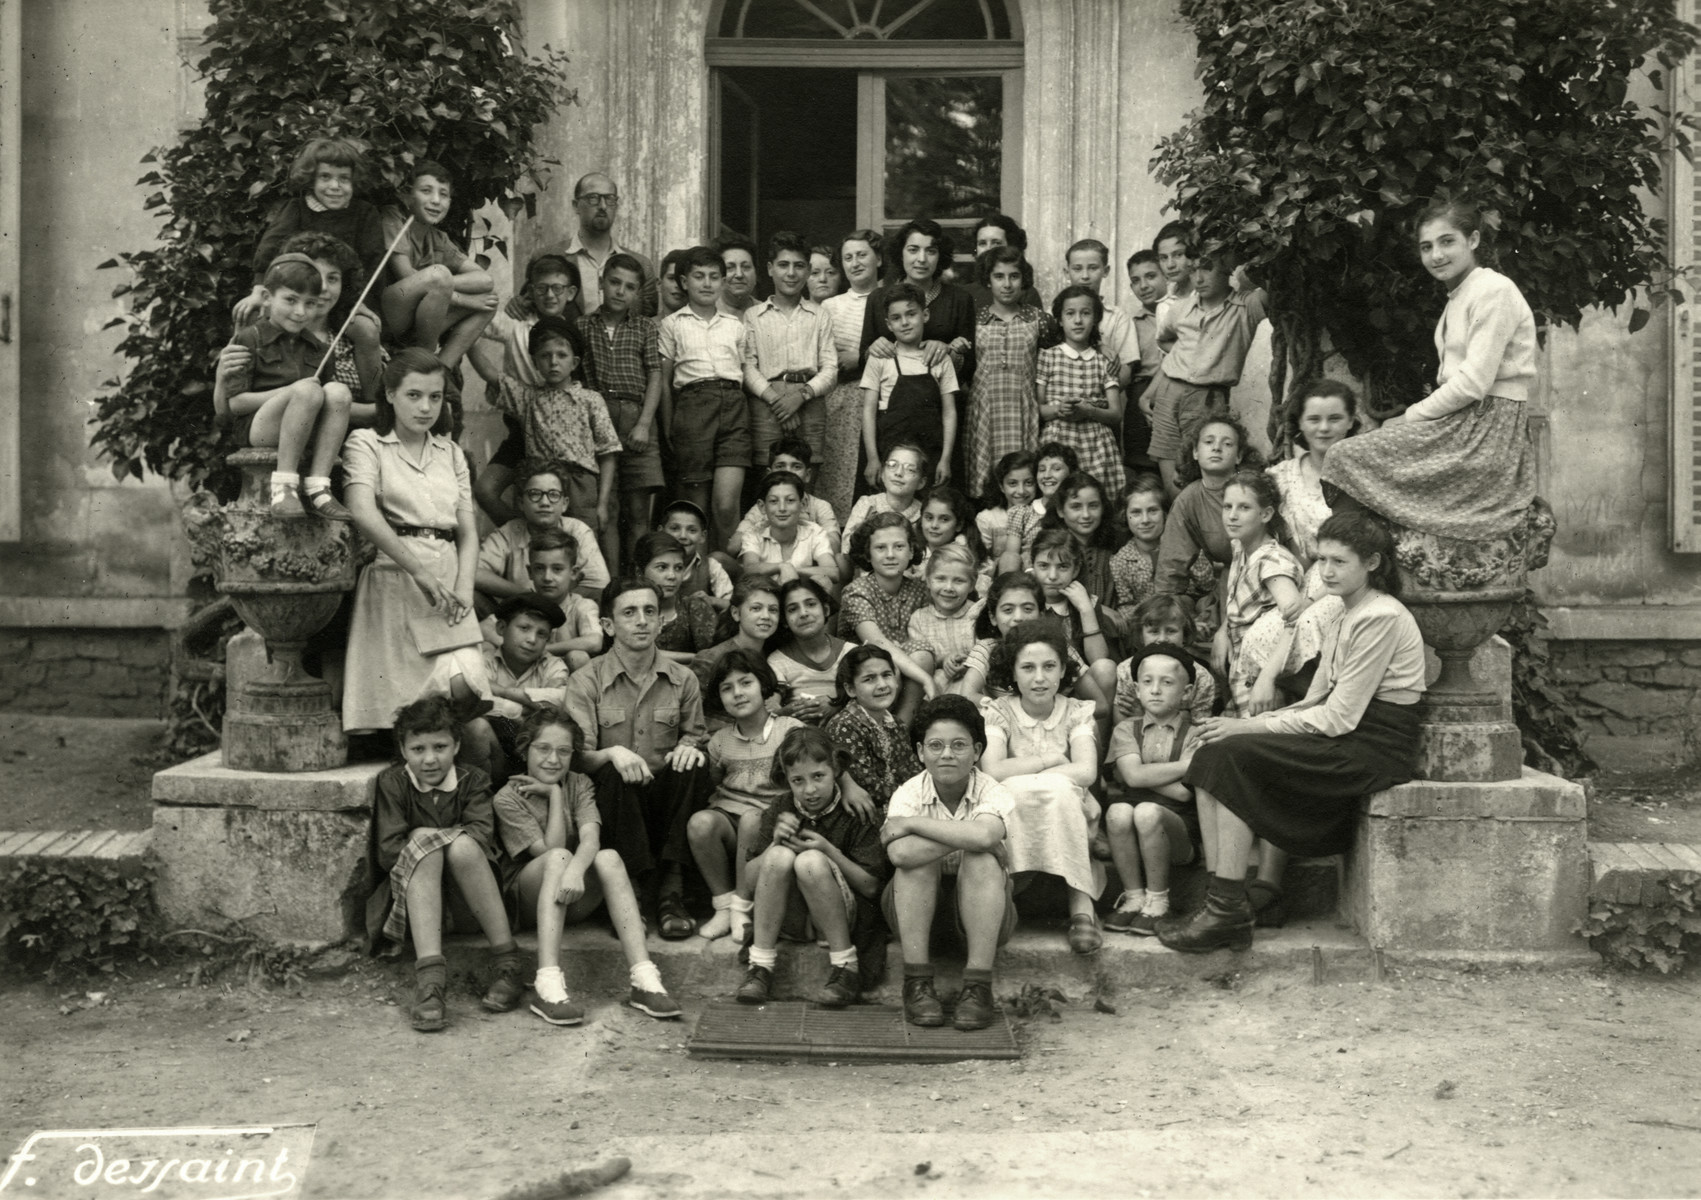 Children and staff of the OSE children's home in Taverny.  Binem Wrzonski who is working as a counselor is pictured on the bottom, third from the left.  Mr. Erich Hausmann, another counselor, is standing in the back row.  Helene Ekayser Weksler, a girl's counselor is on the left with her arm around a little boy.  Among the children is Felice Zimmern (wearing glasses, center), her sister Beatte (two rows in front to her right), Gisele and Lise Behar (above her) and Leon Bretmel (first person standing on the steps, on the left).